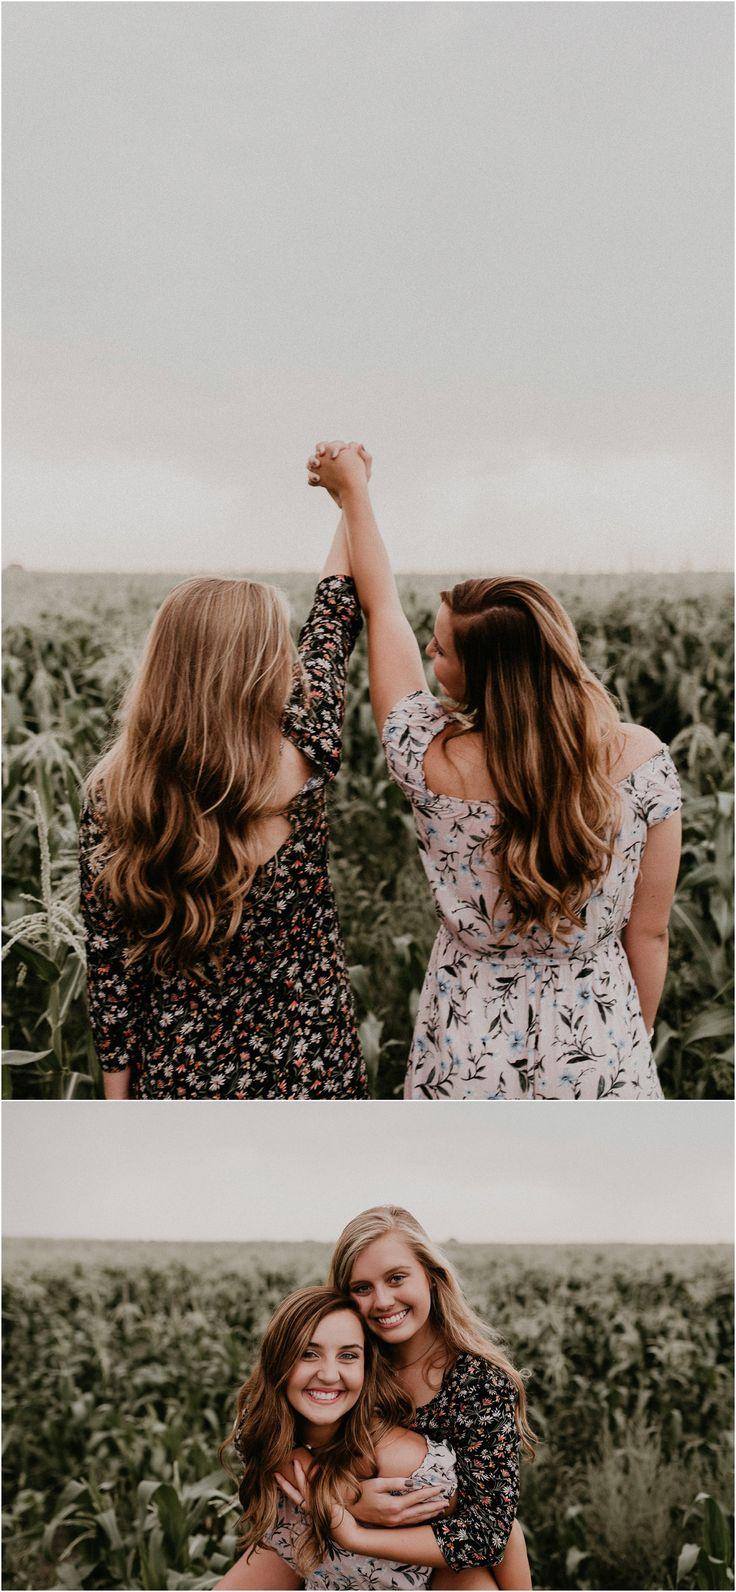 Boise Senior Photographer Idaho Summer Senior Pics Cornfield Linder Farms Floral Dress Flowers Sisters Love Family Pictures Teenagers Posing Ideas and Inspiration Makayla Madden Photography